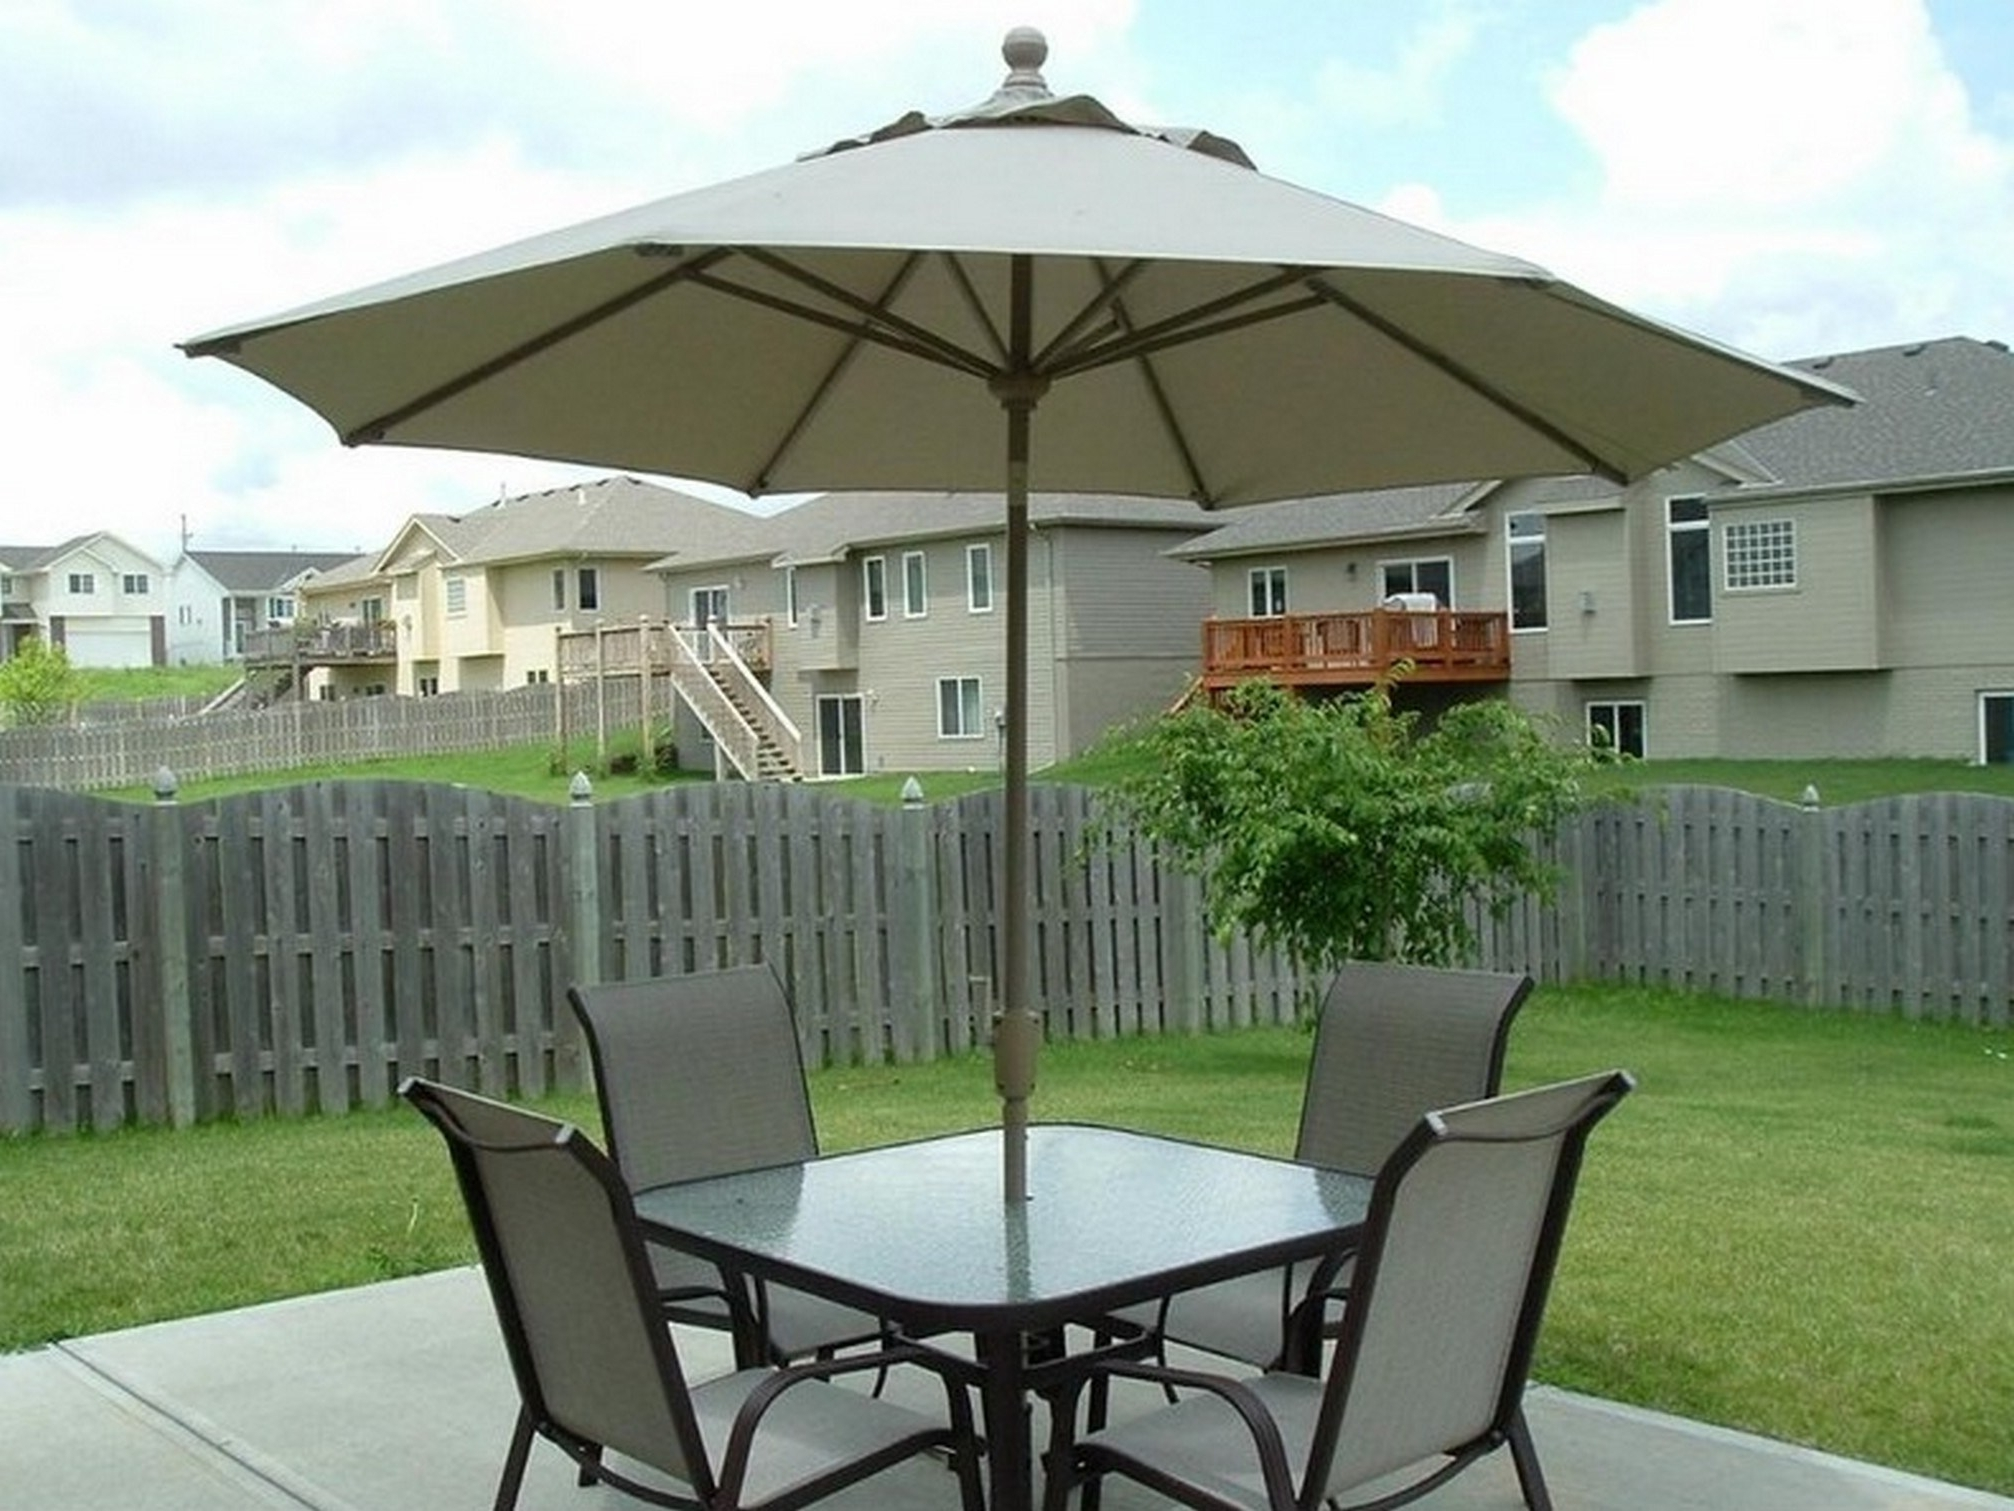 Patio Table Sets With Umbrellas Inside Trendy Splendent Affordable Patio Furniture Sets Discount Wicker Patio (View 6 of 20)